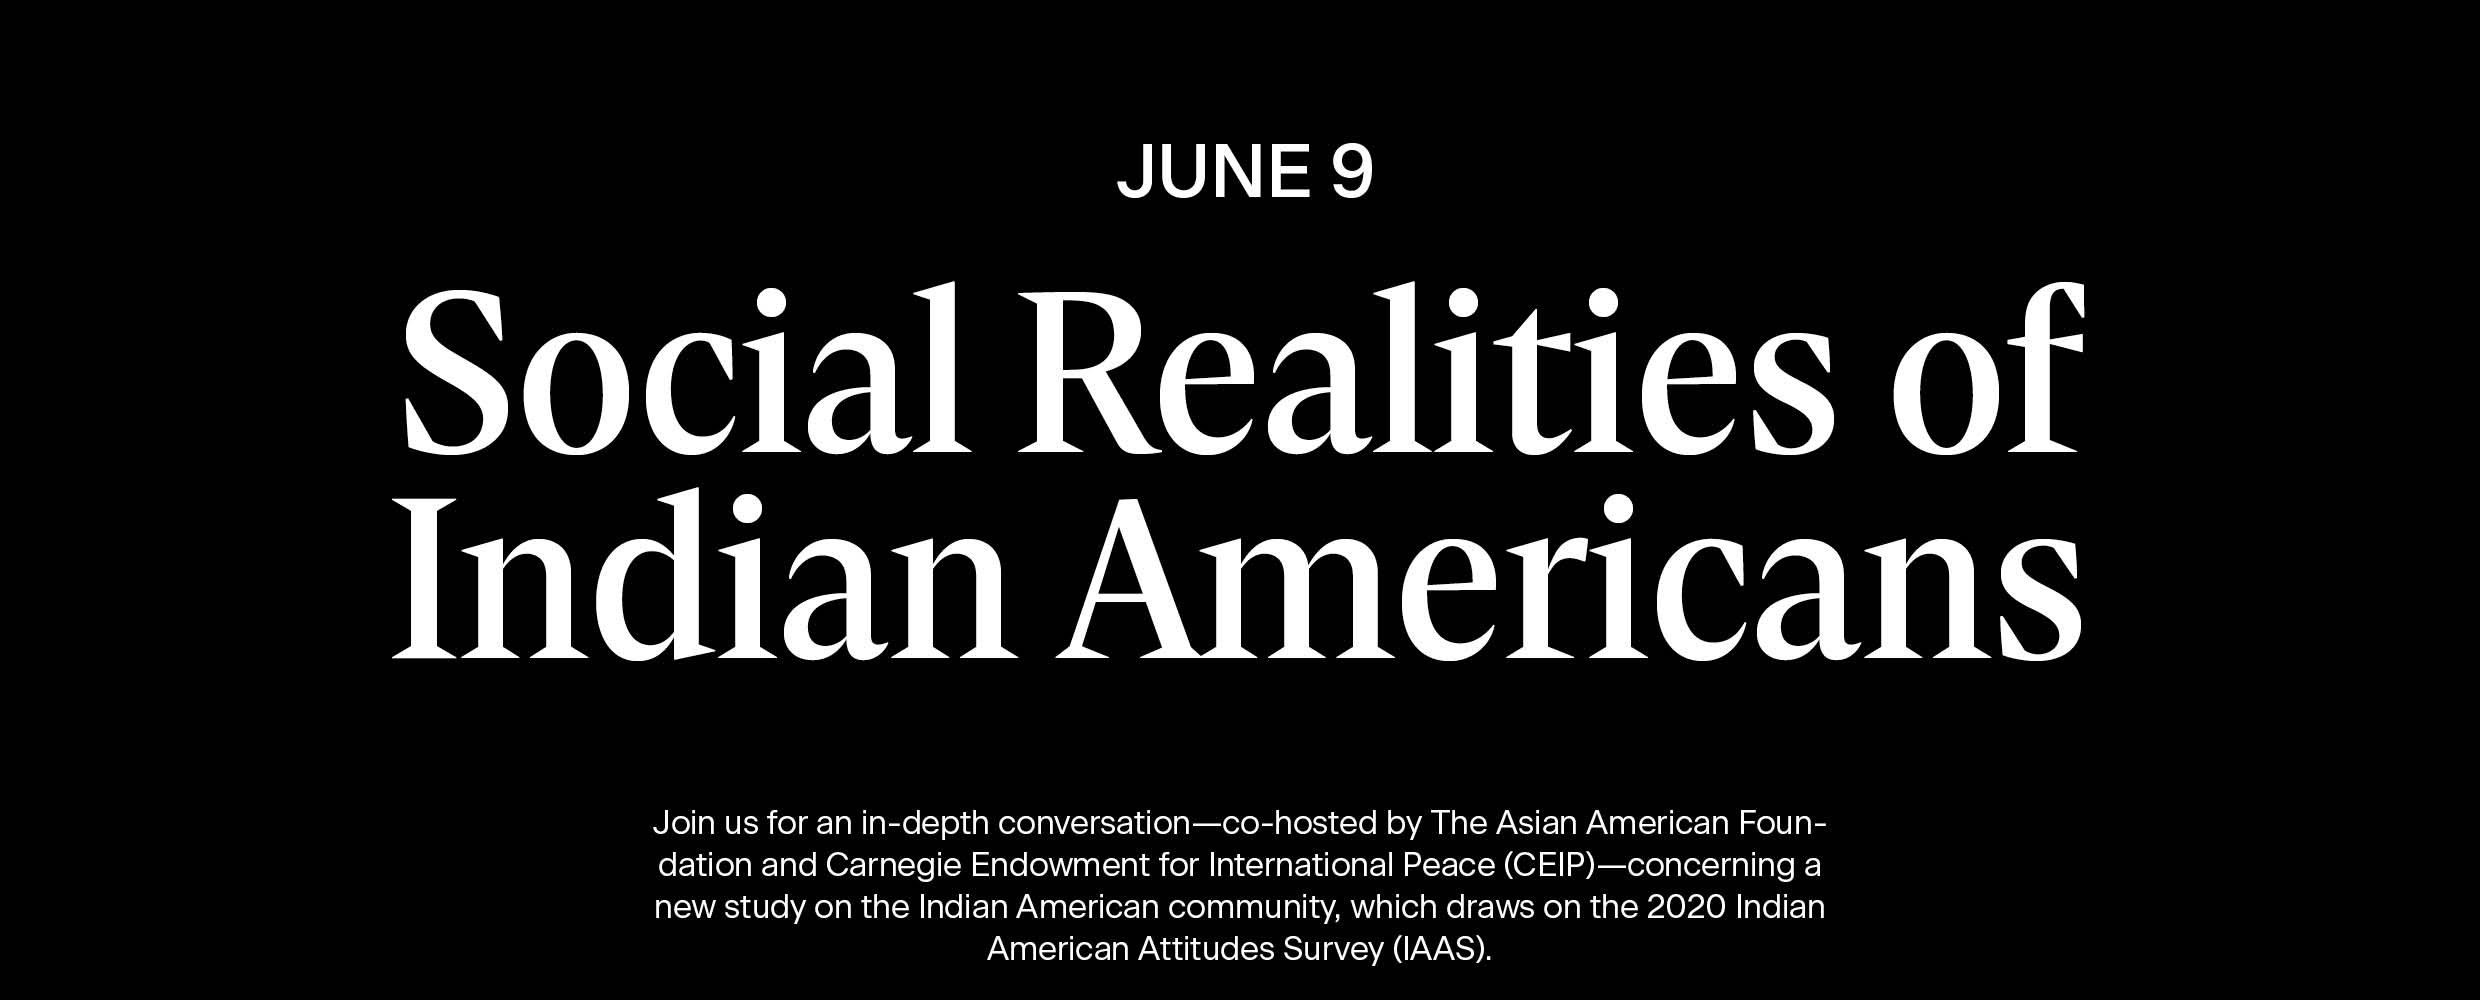 Social Realities of Indian Americans: Findings From the 2020 Indian American Attitudes Survey